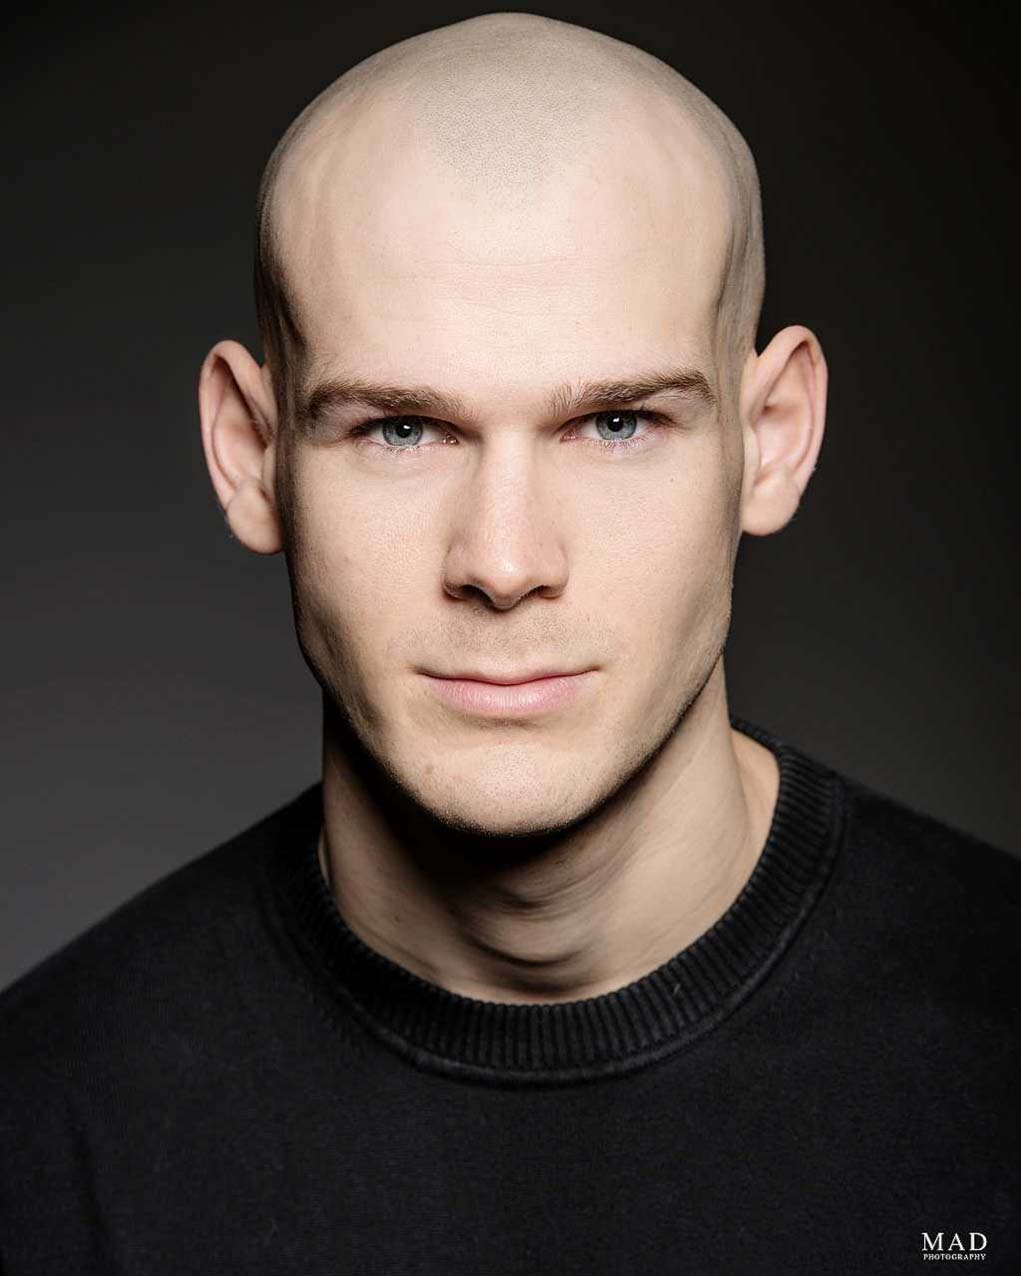 Male Headshots - Mad P...